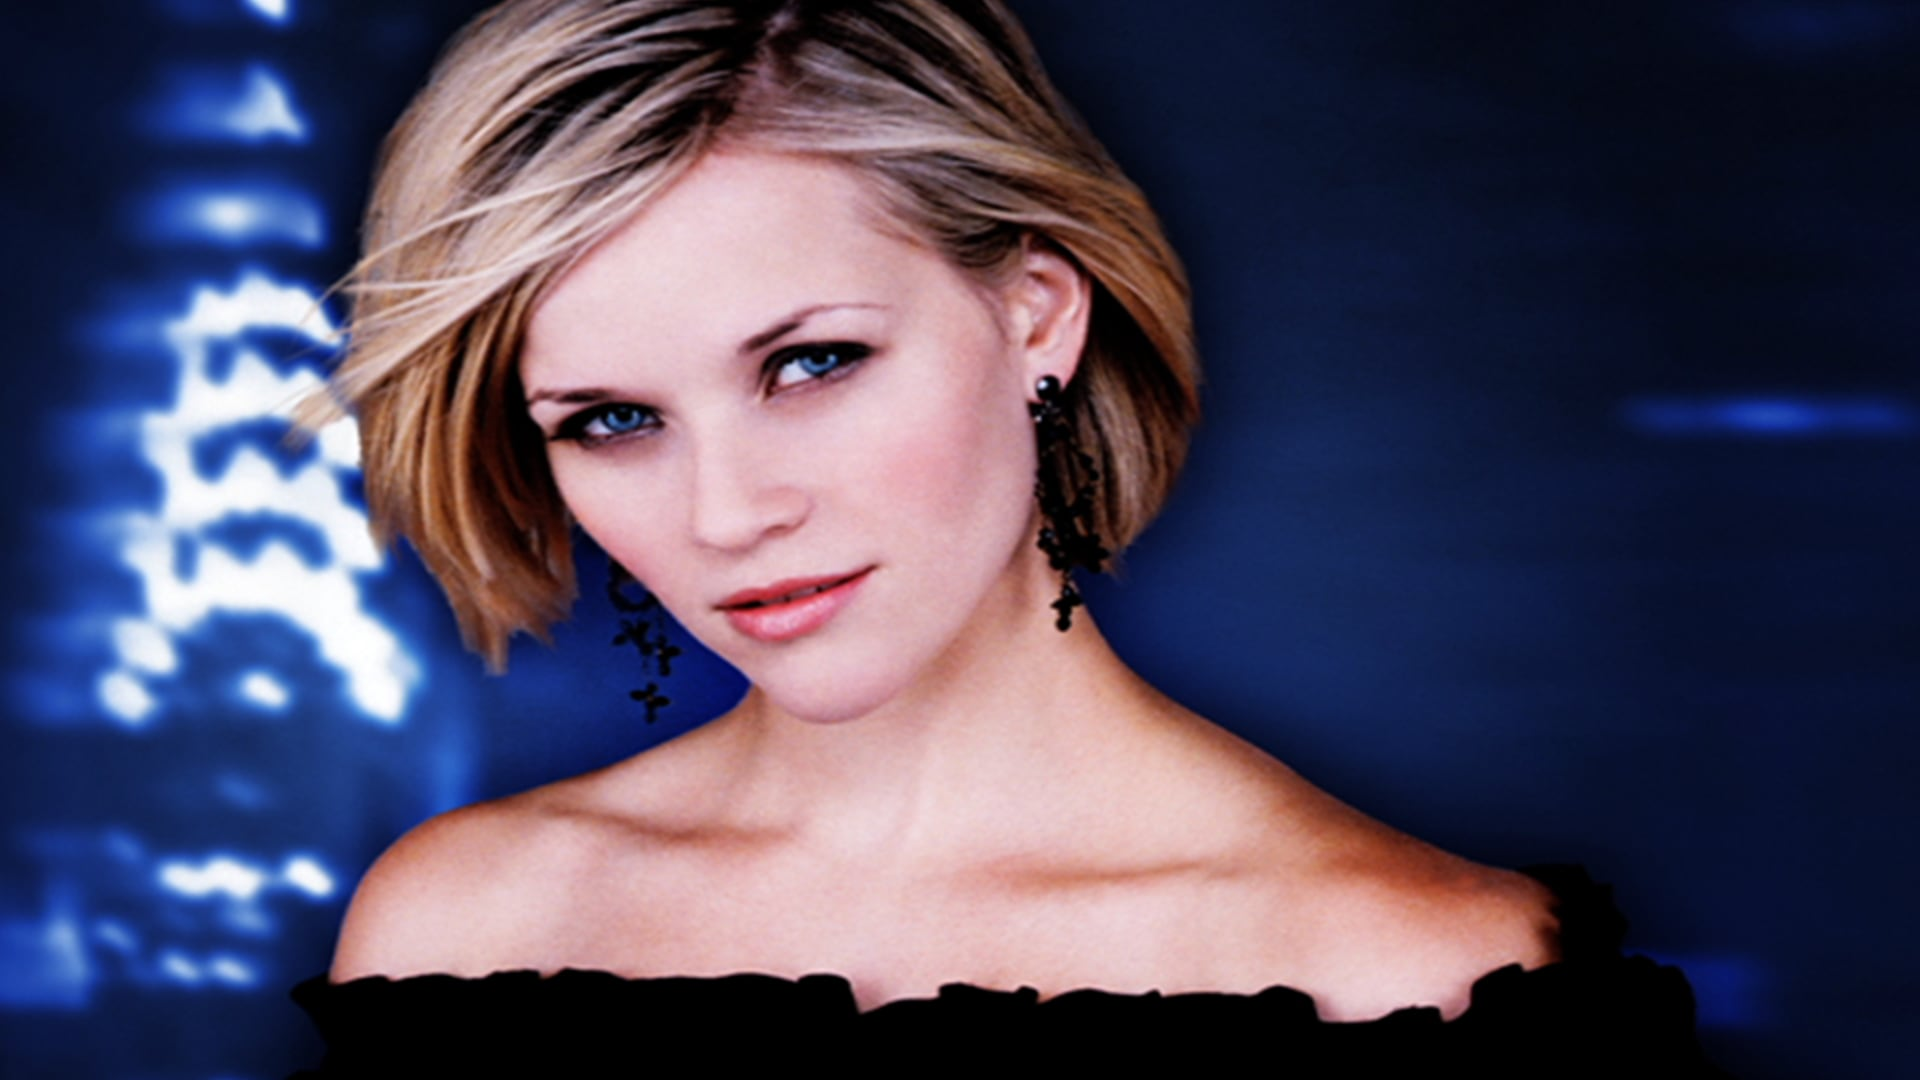 Reese Witherspoon: September 29, 2001